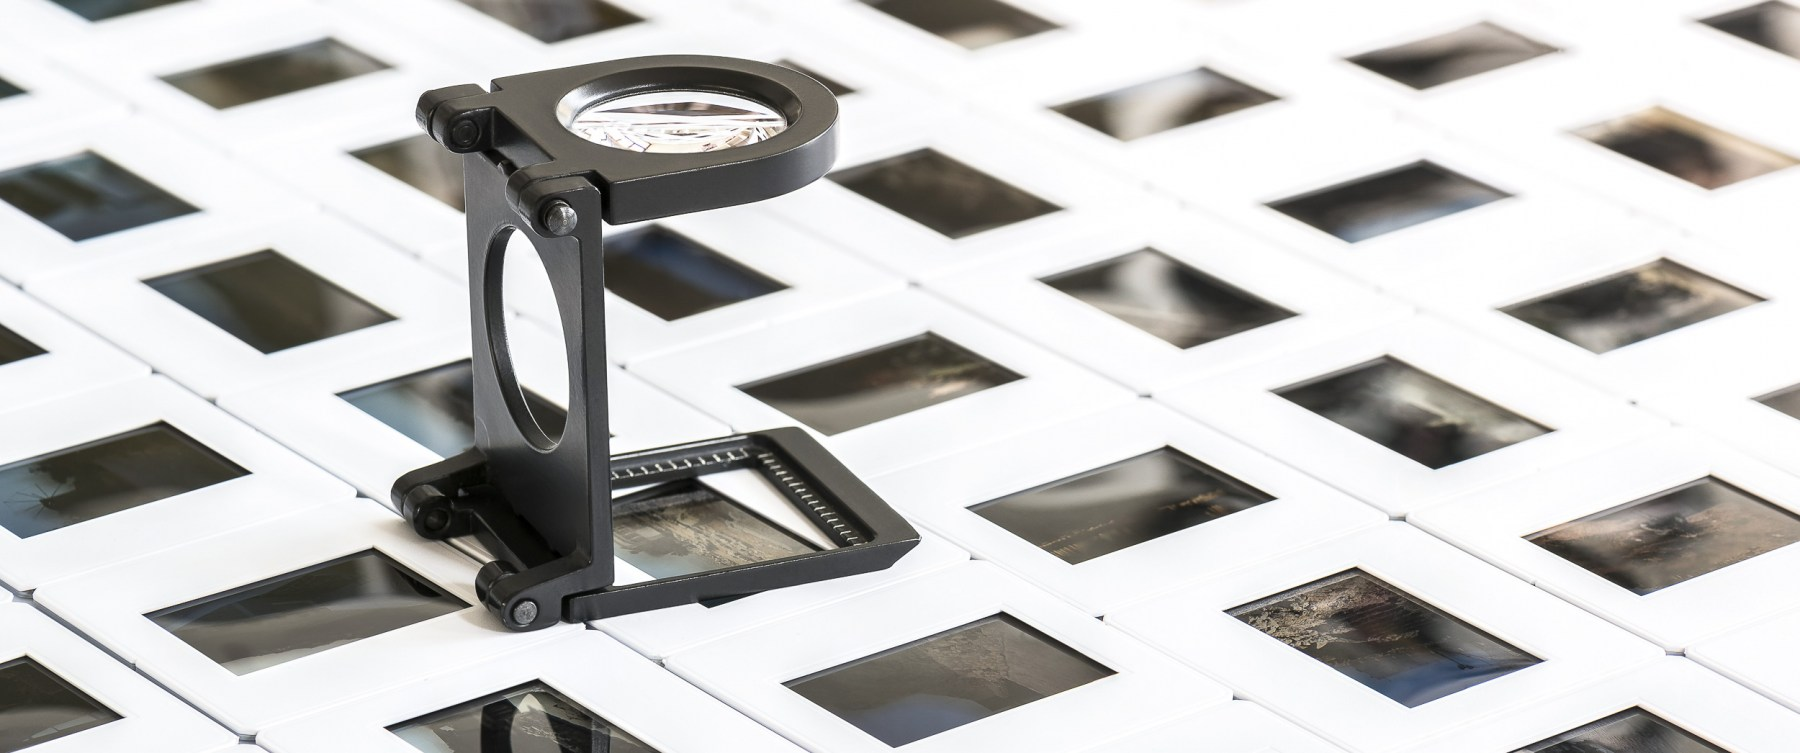 High Resolution Image Scanning in Marin, SF Bay Area |